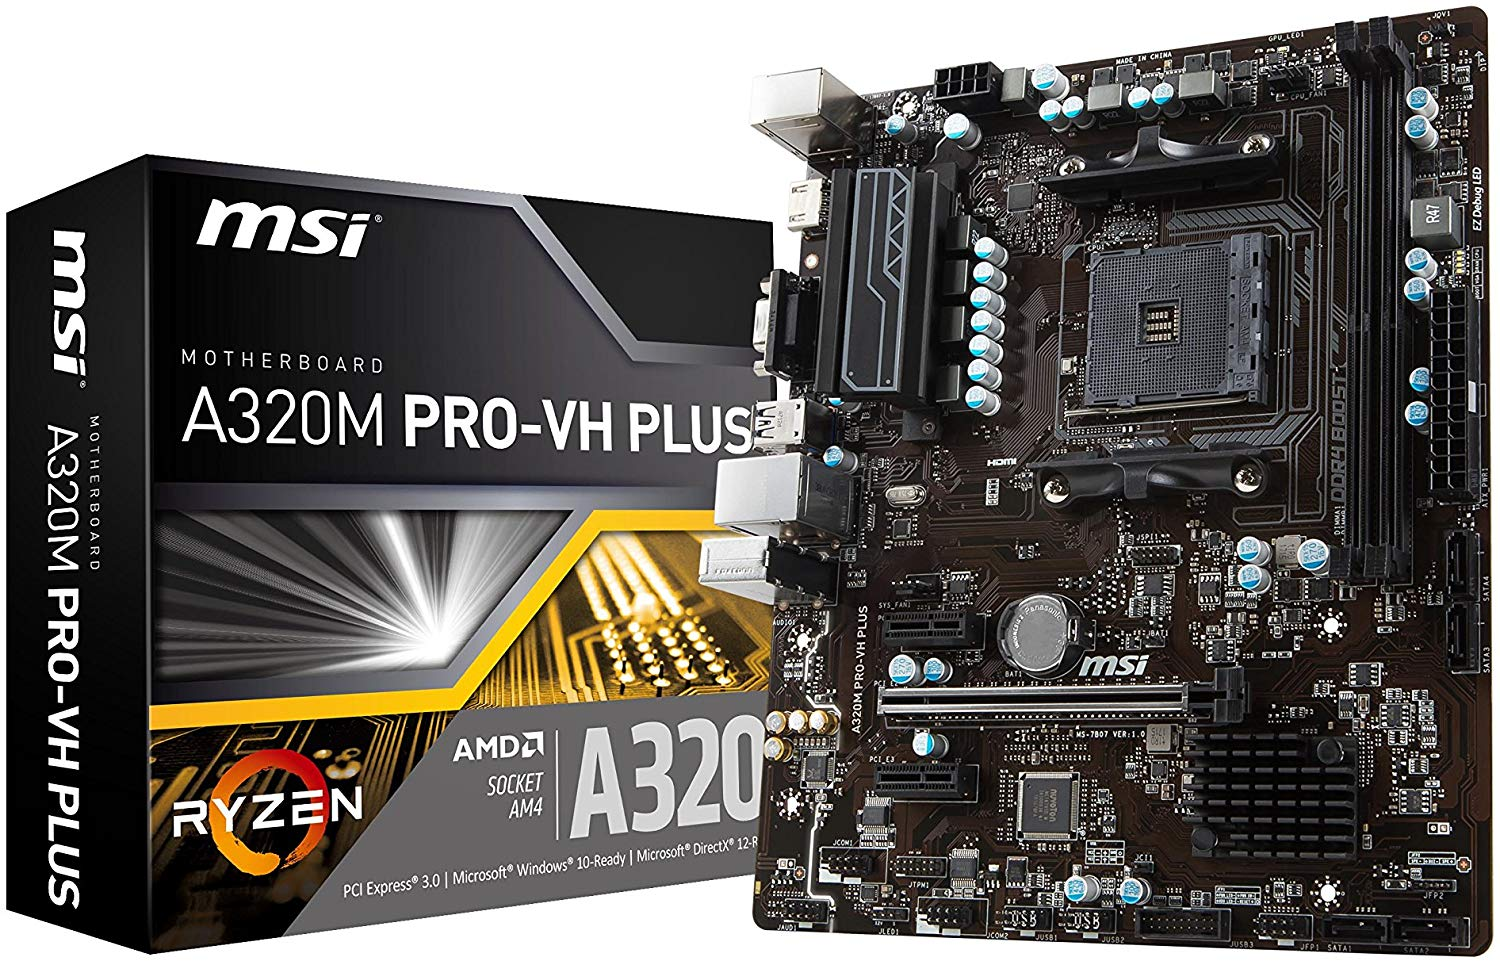 MSI A320 PRO-VH PLUS Motherboard